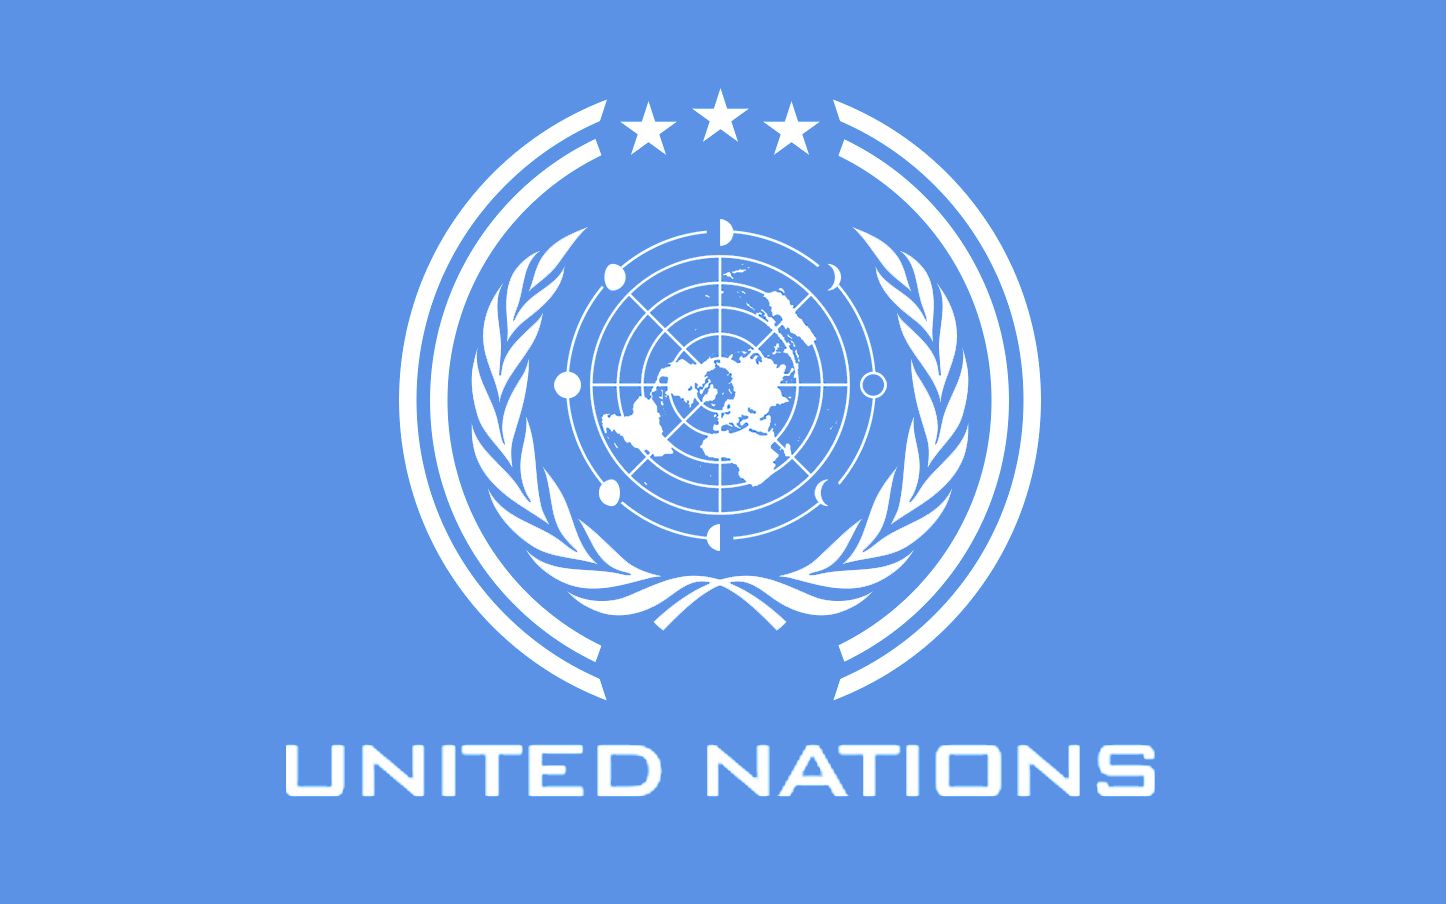 Joint Secretary of Finance Ministery, Rashmi R Das has been Appointed to UN Tax Committee